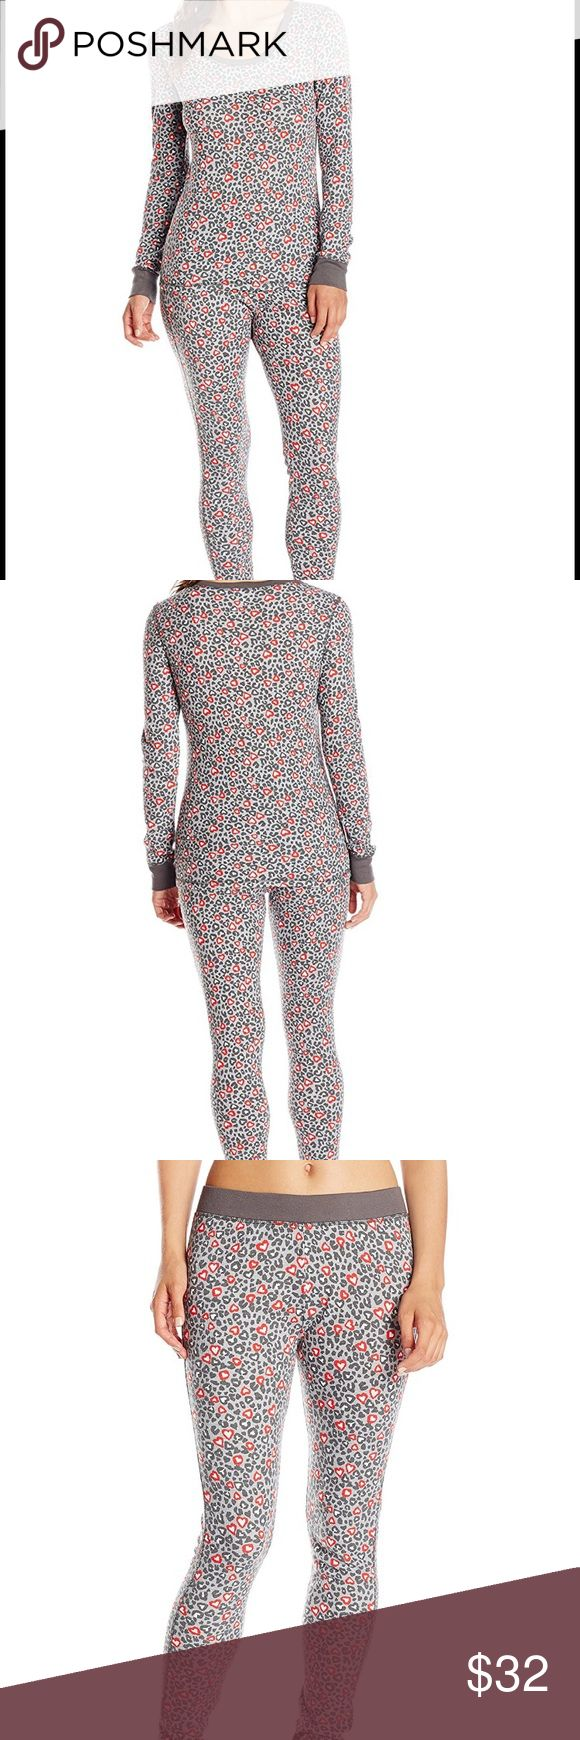 St Eve Leopard Love Thermal Set ❤️❤️❤️ St Eve Two Piece Thermal Set in Leopard Love Print Intimates & Sleepwear Pajamas